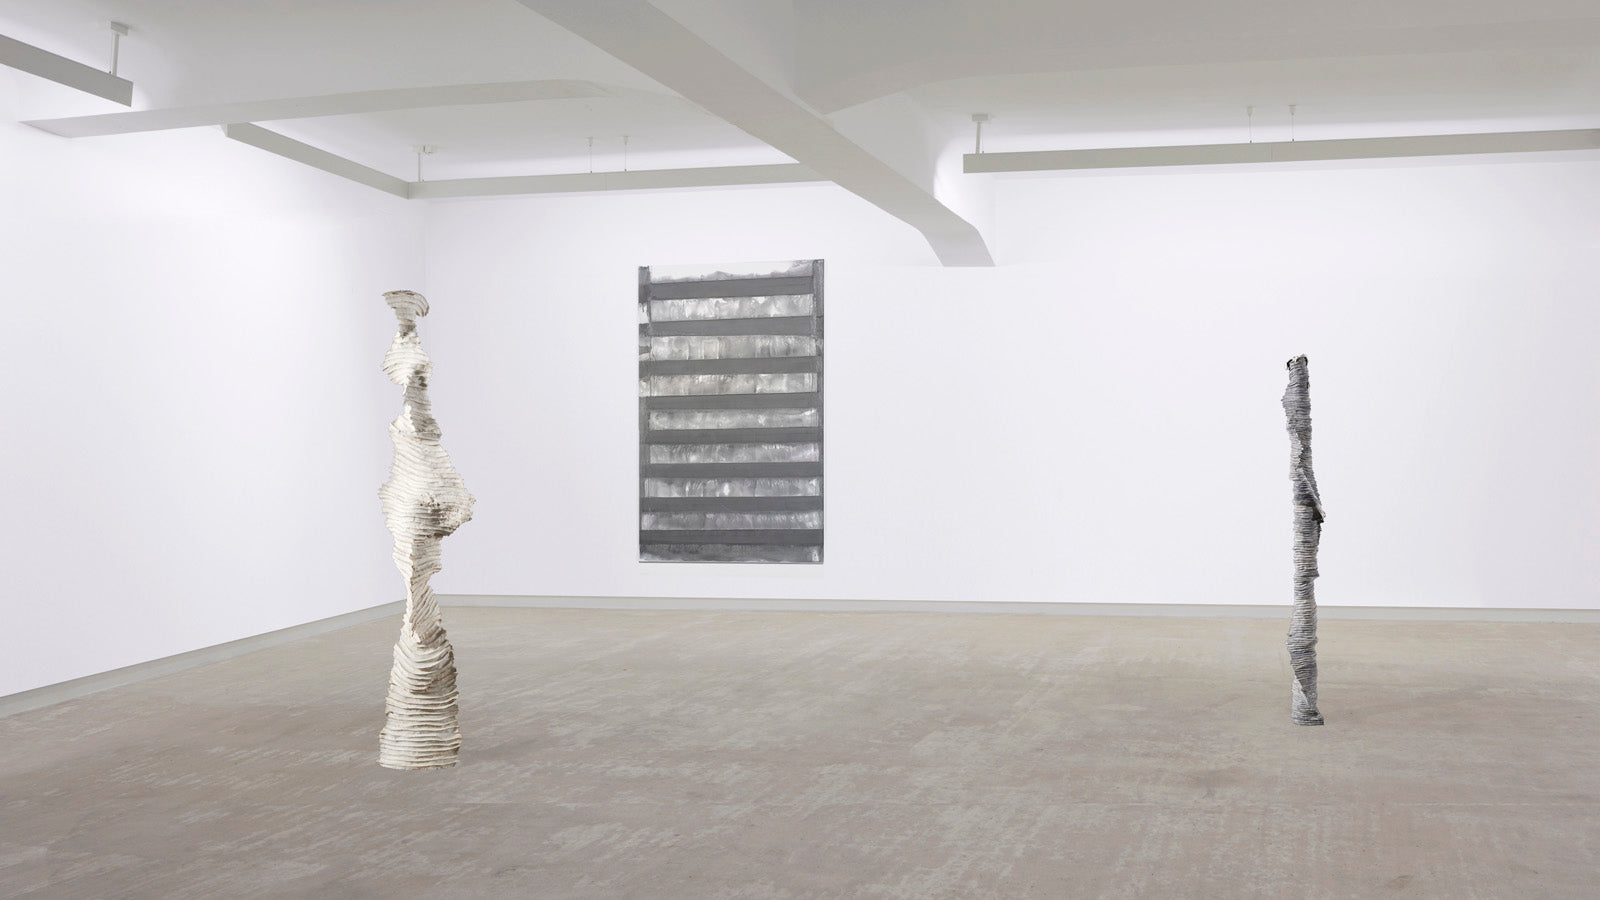 Stijn Ank, inSTANCE, Installation view, michaeljanssen.gallery